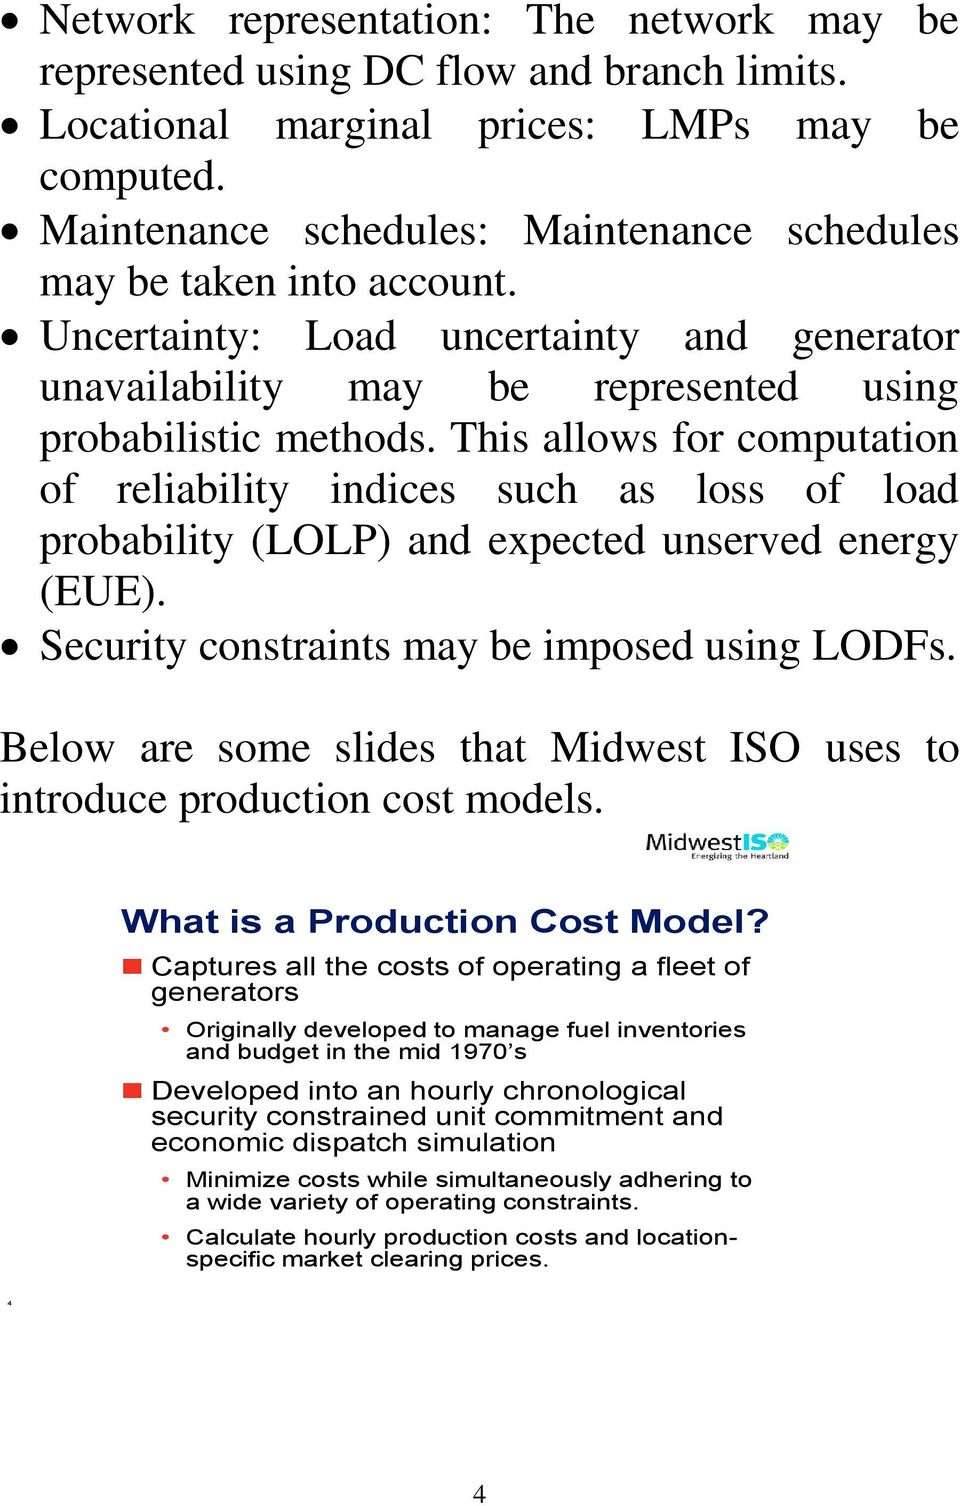 This allows for computation of rliability indics such as loss of load probability (LOLP) and xpctd unsrvd nrgy (EUE). Scurity constraints may b imposd using LOFs.